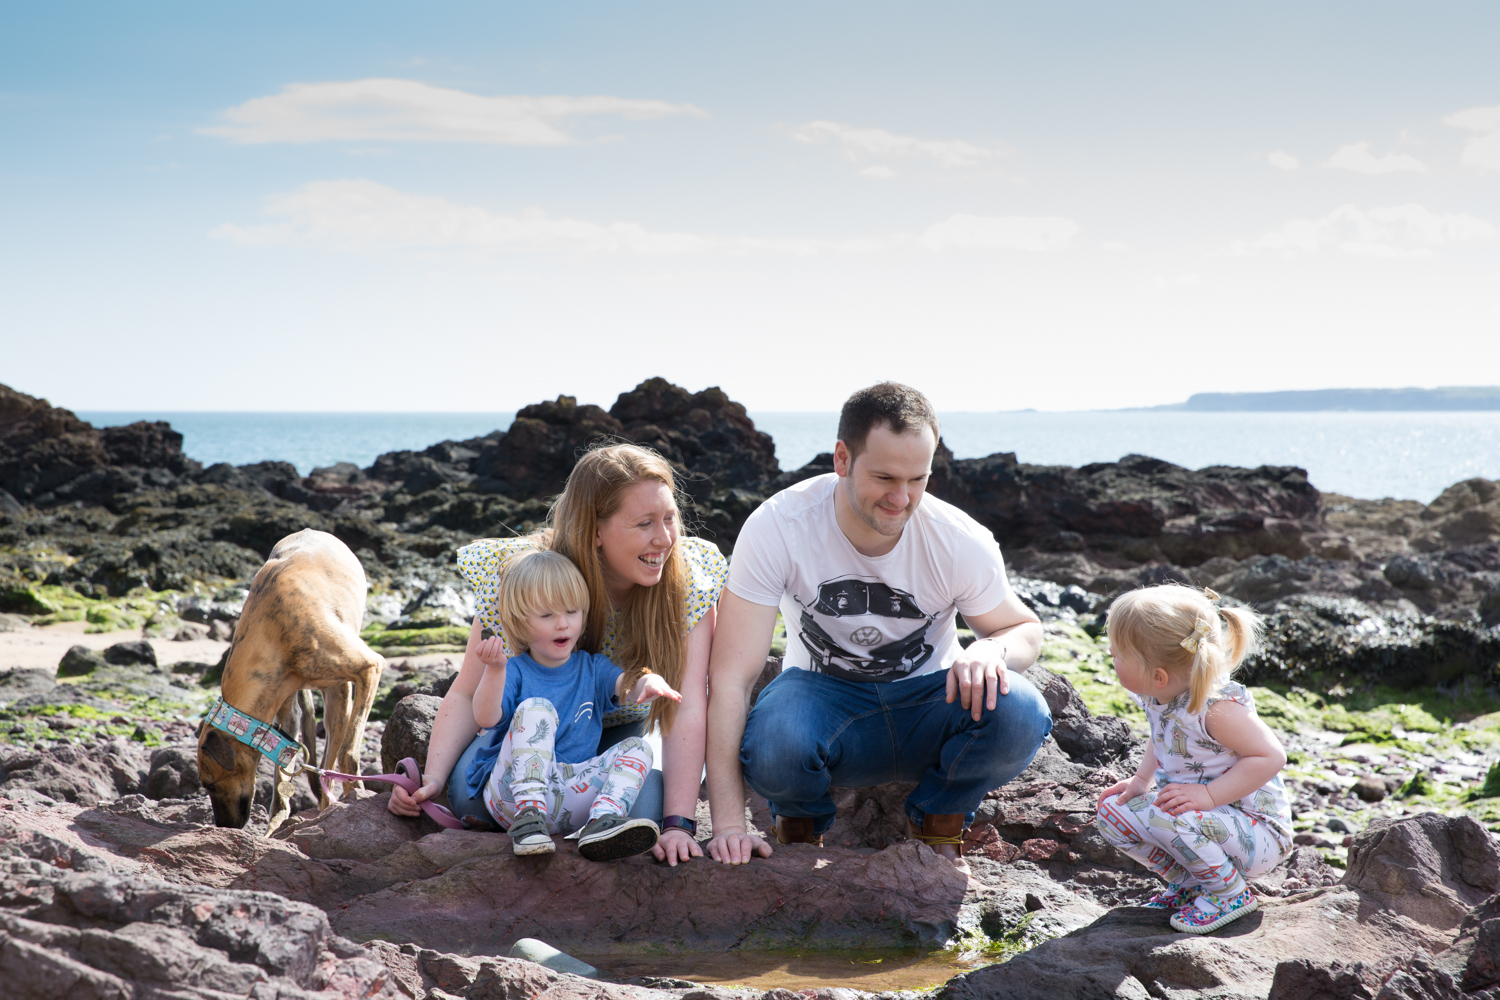 PICTORIAL_BERWICK_pre-wedding-family-couple-shoot-beach-coldingham-bay-birthday-dogs-grandparents-0584.jpg